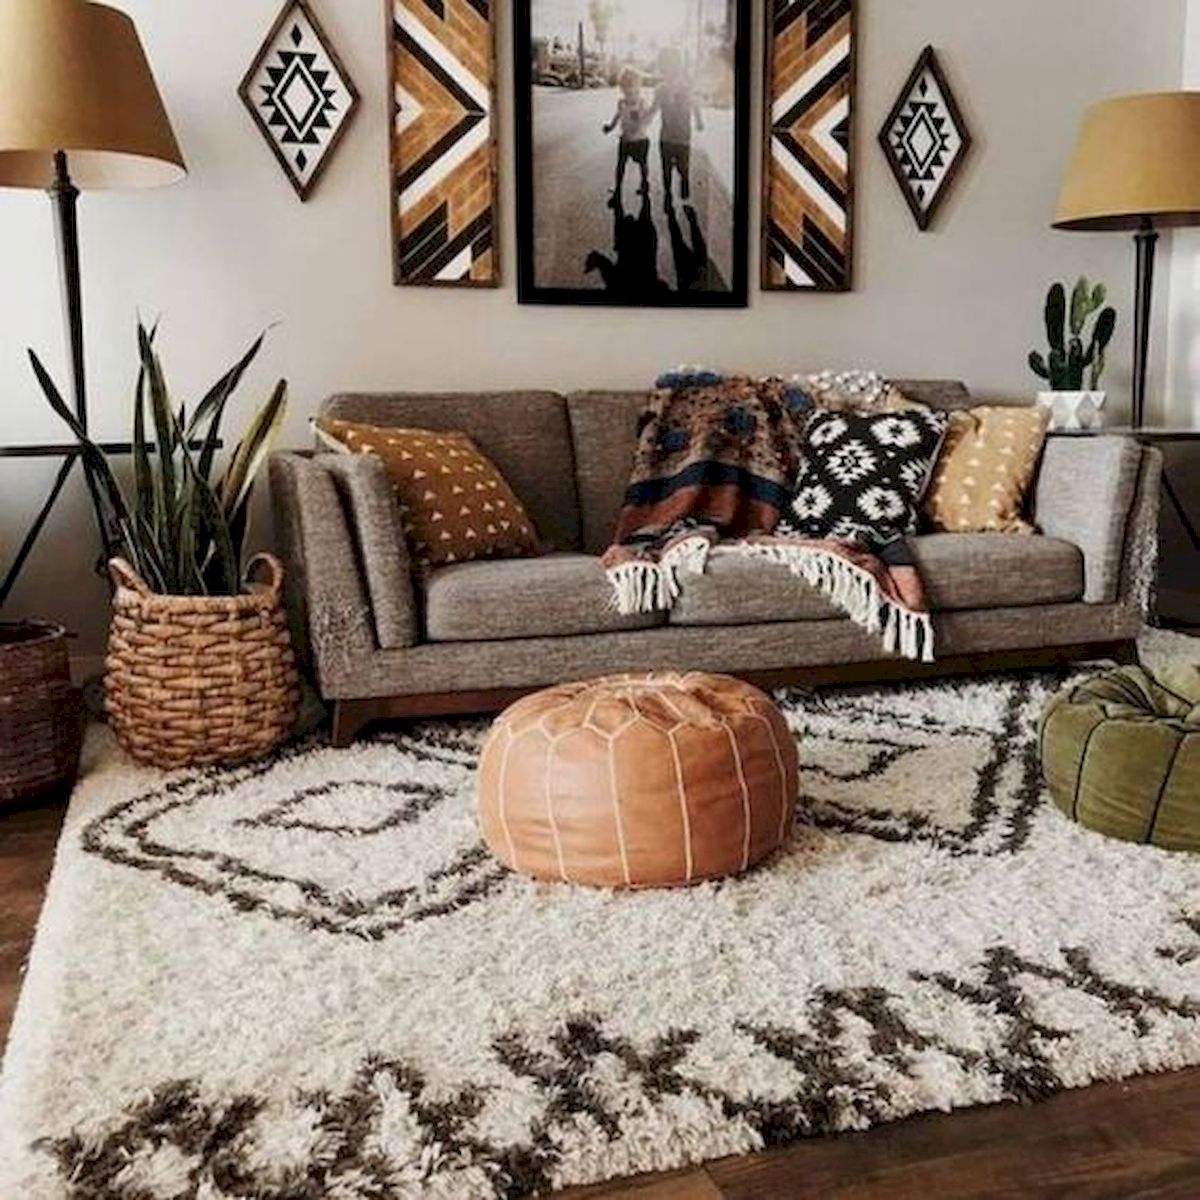 55 Bohemian Living Room Decor Ideas - Googodecor